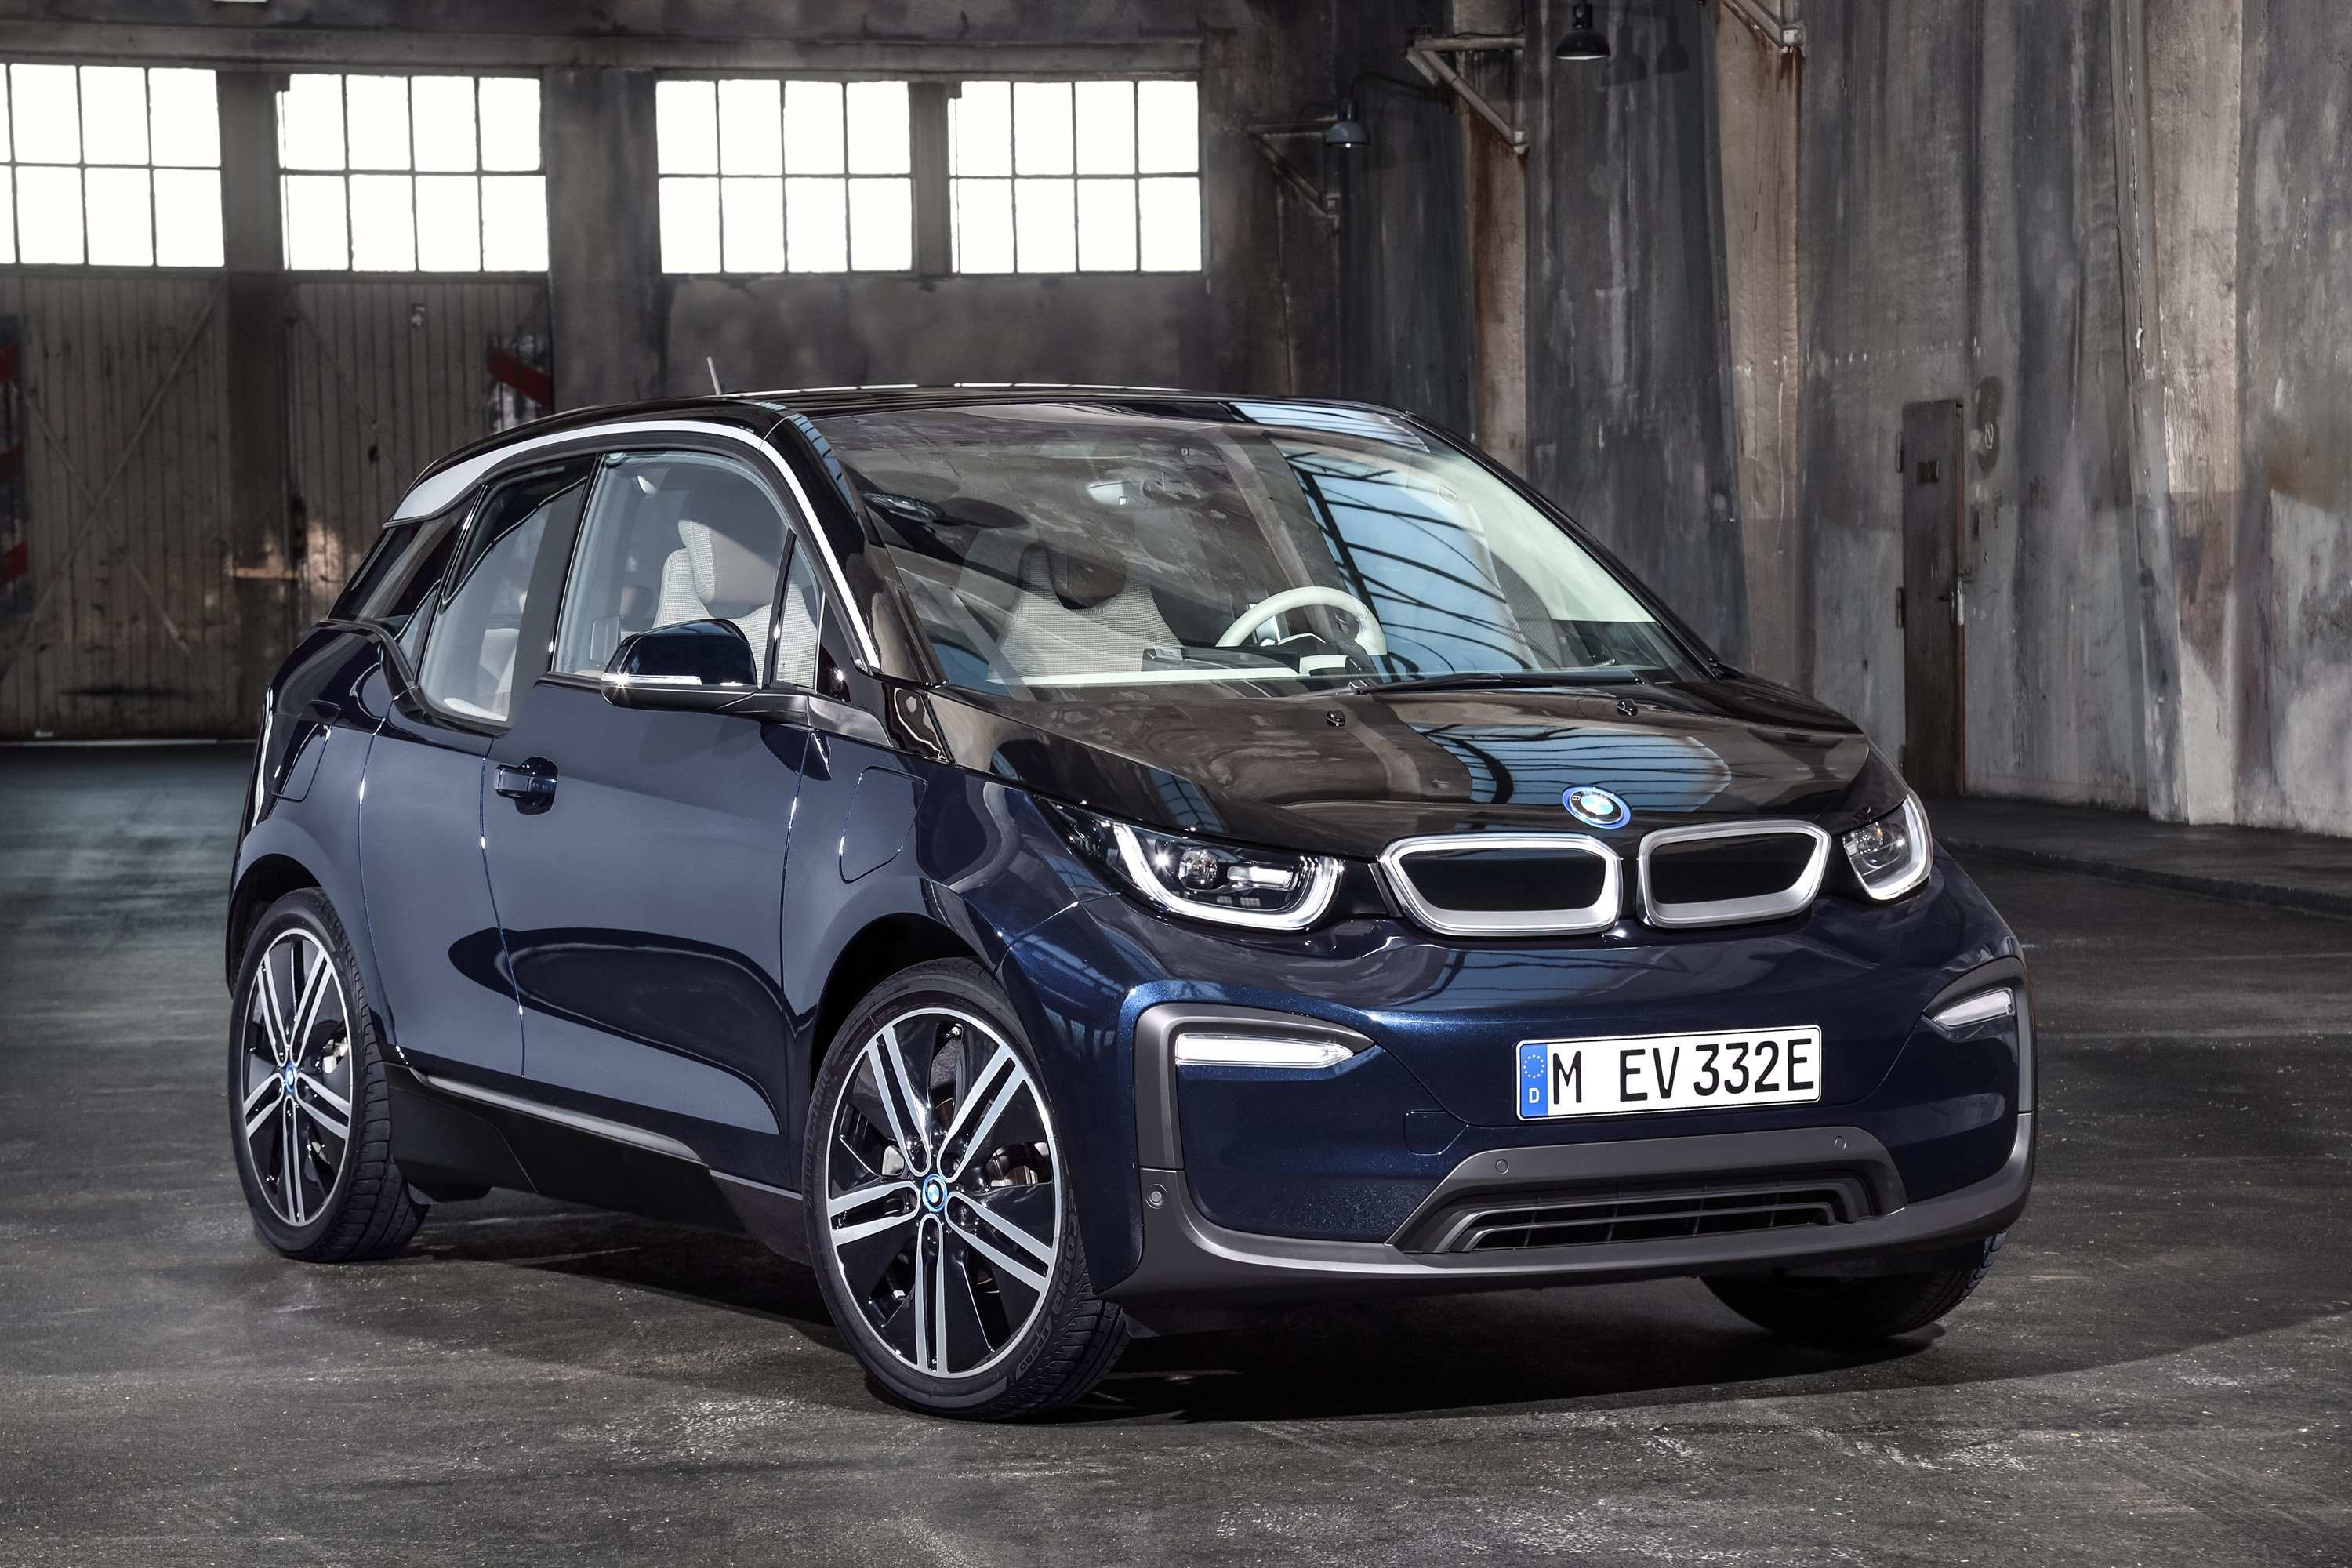 41 The 2019 Bmw Ev Wallpaper with 2019 Bmw Ev